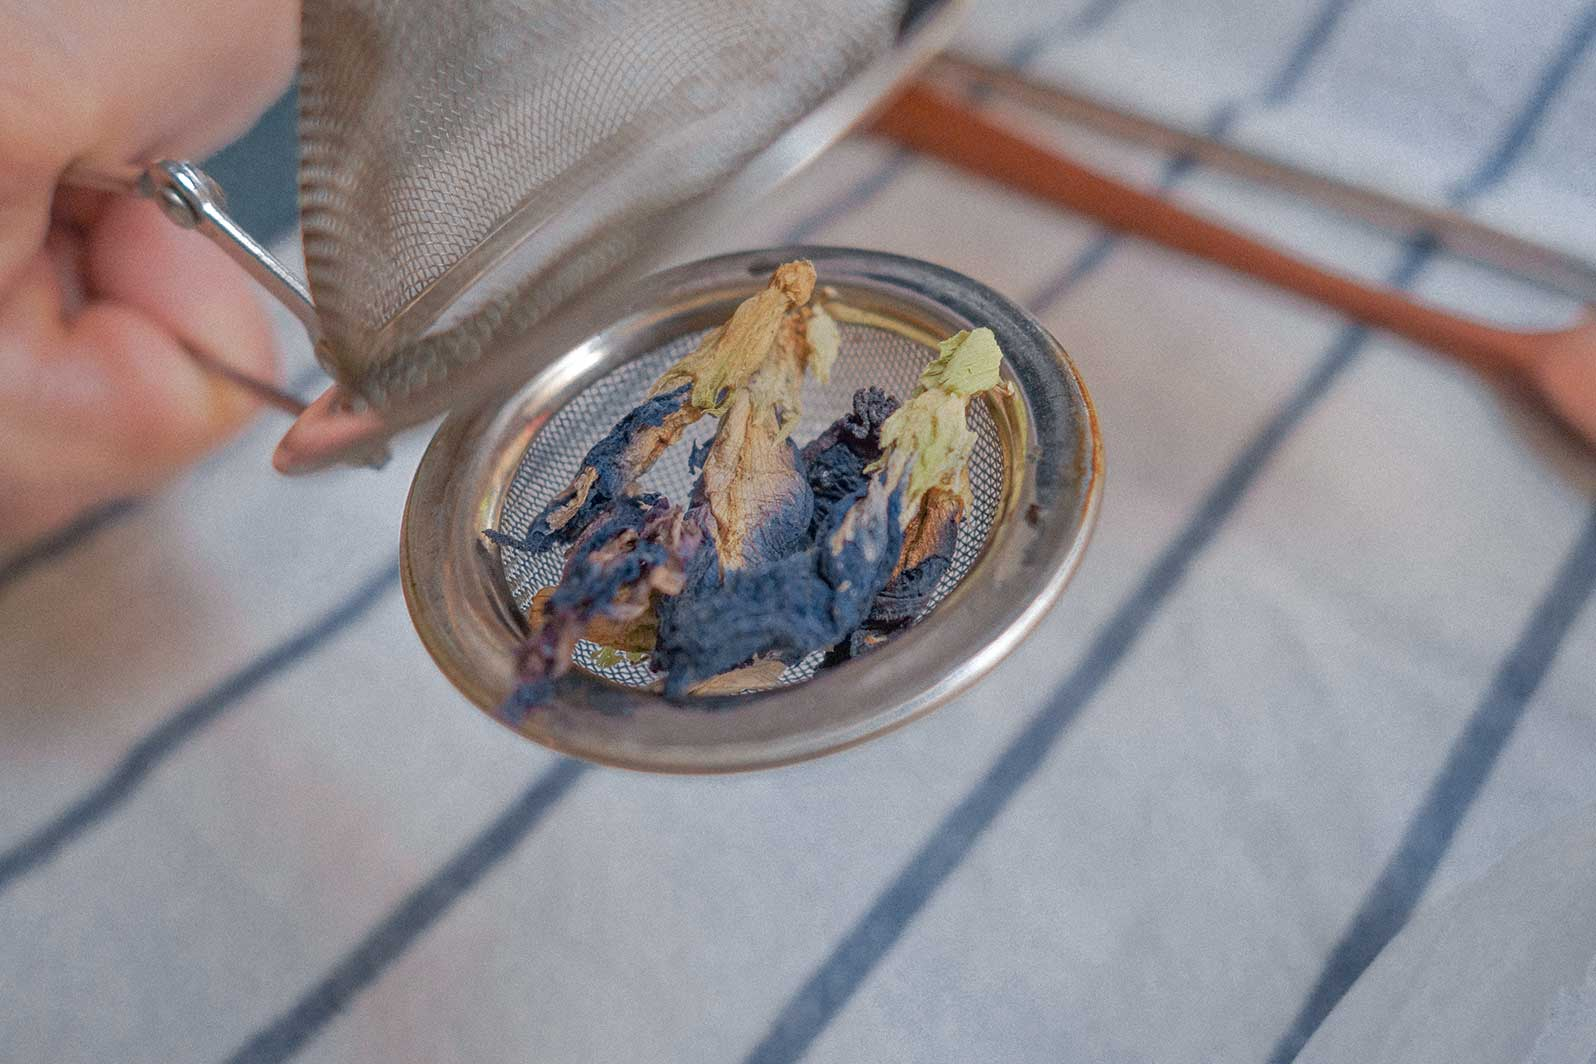 image showing a hand holding the tea strainer with blue dried butterfly pea flowers in it